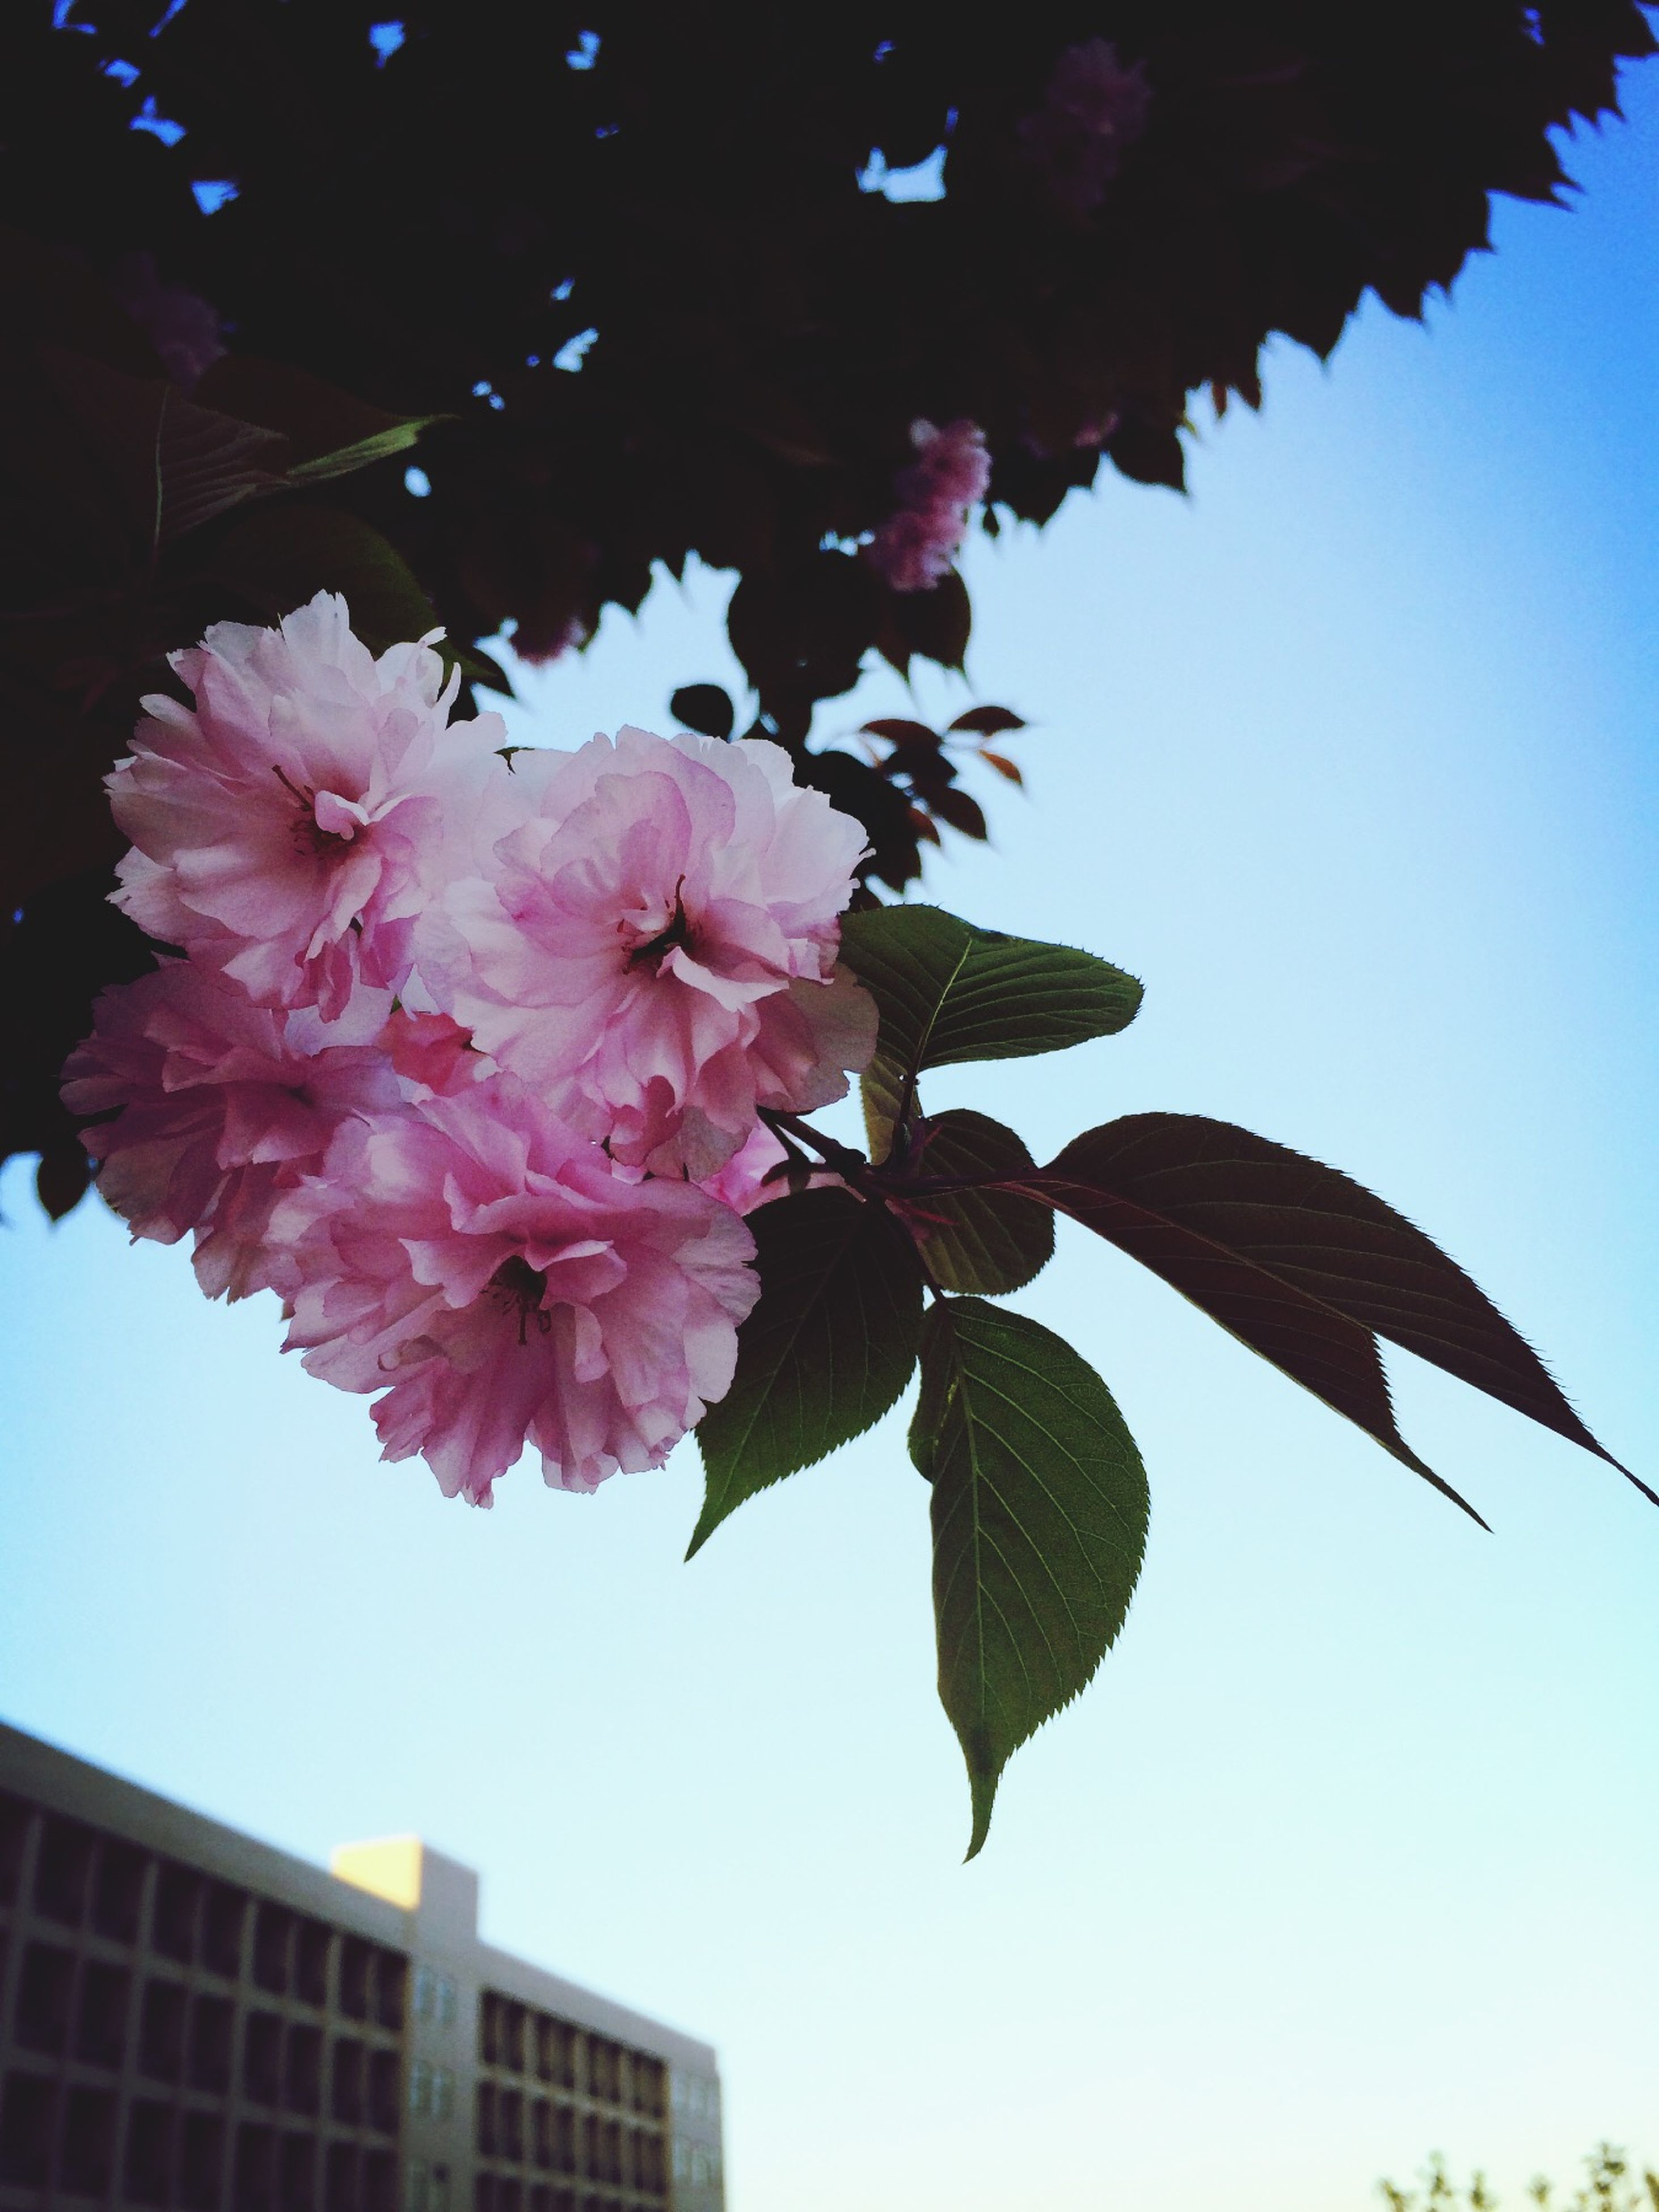 low angle view, flower, growth, freshness, branch, clear sky, fragility, tree, leaf, nature, beauty in nature, blossom, petal, sky, pink color, blooming, in bloom, close-up, day, twig